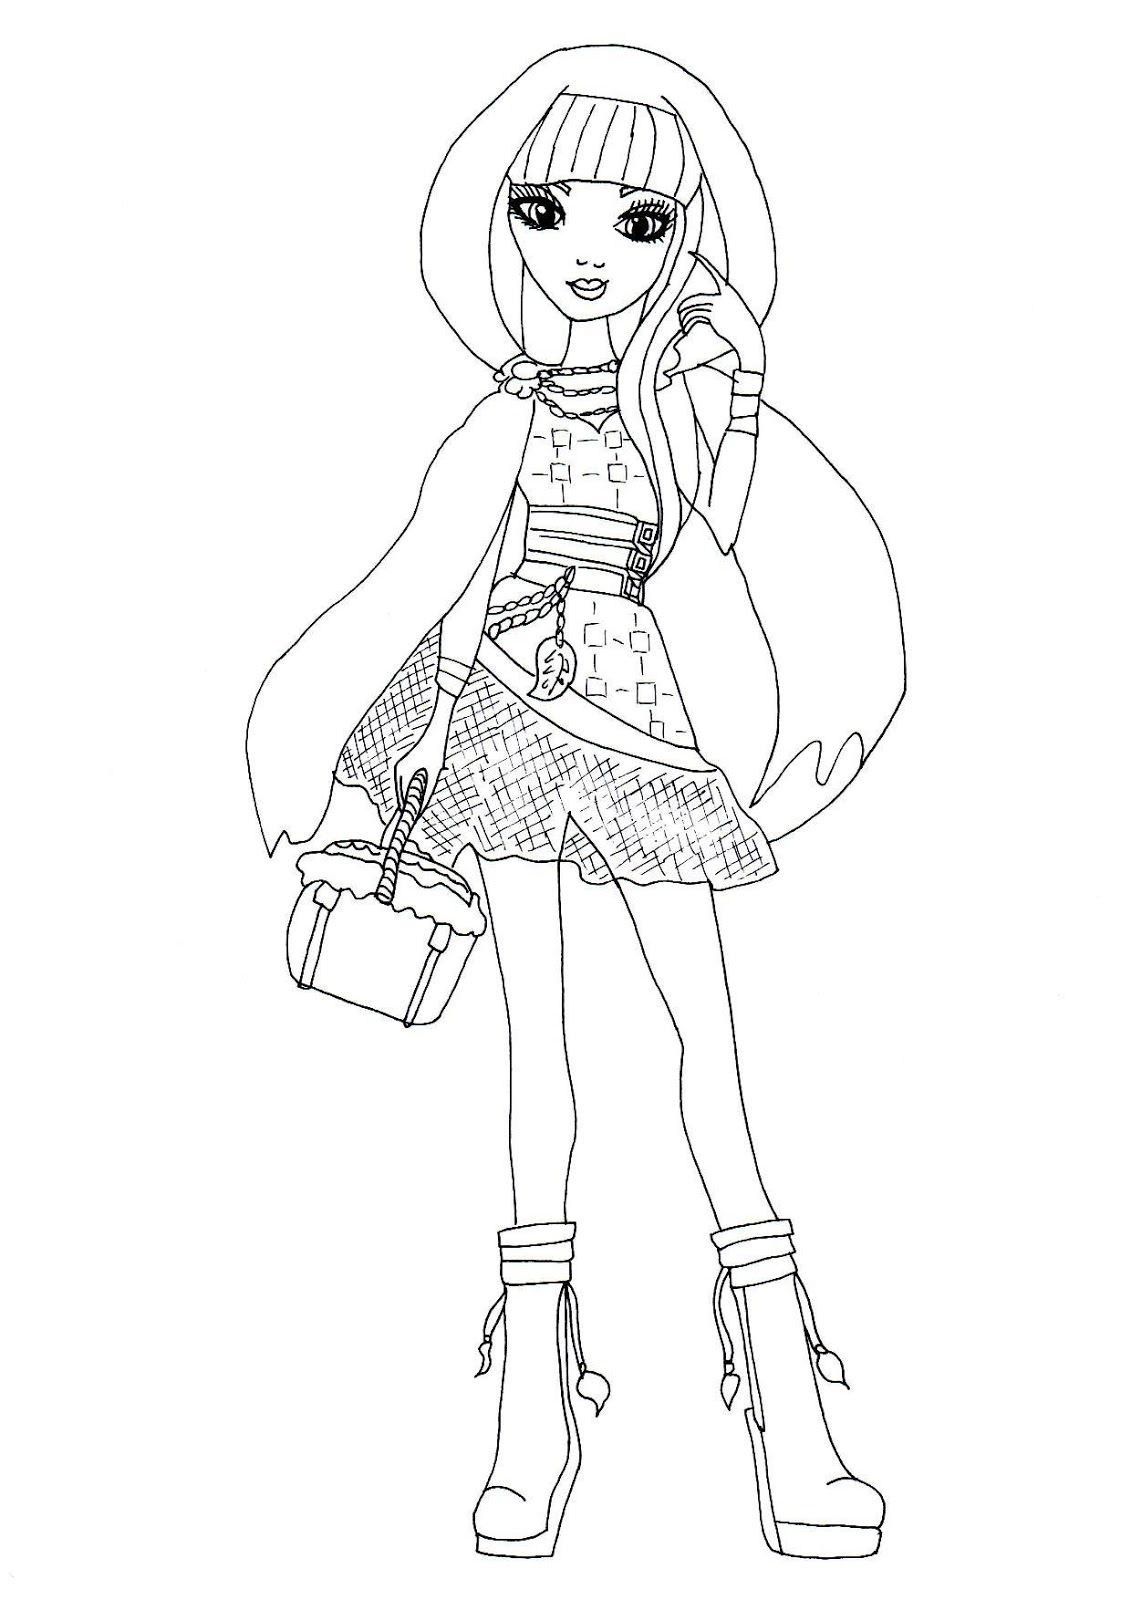 Cerise Hood Ever After High Coloring Page Coloring Pages Ever After High Online Coloring Pages